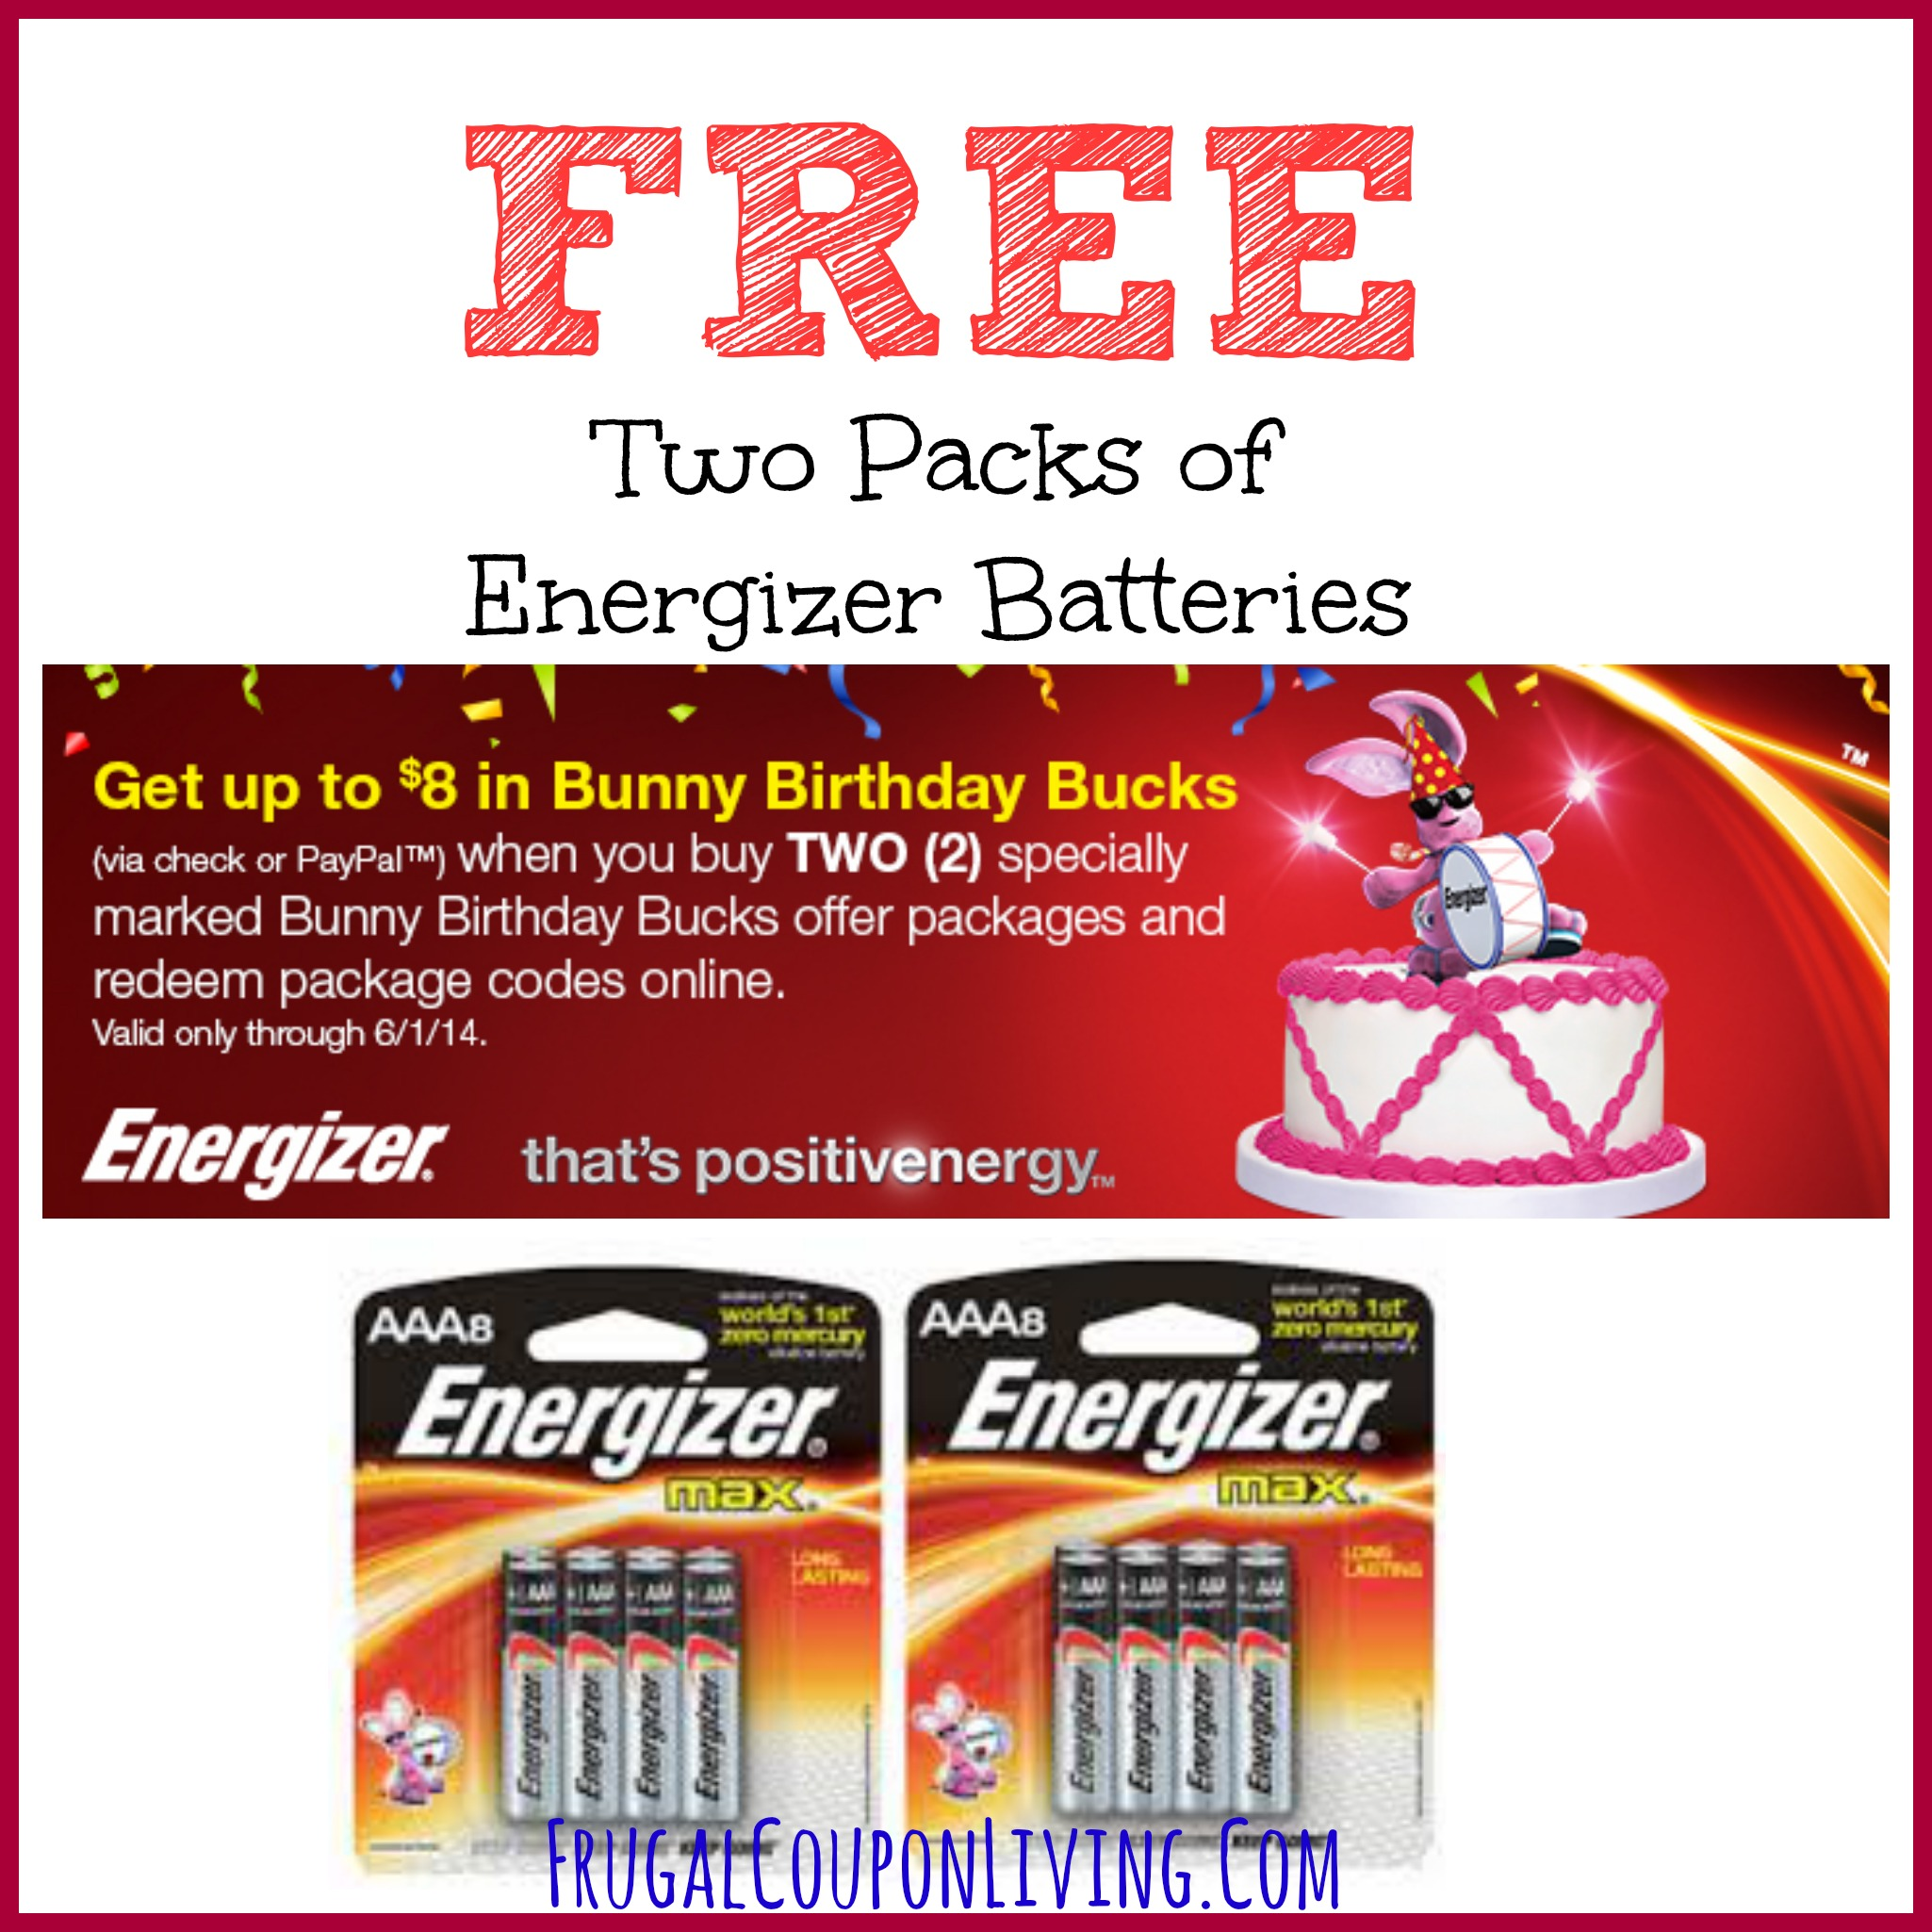 graphic about Printable Battery Coupons called Printable energizer battery discount coupons 2018 - Very good sams